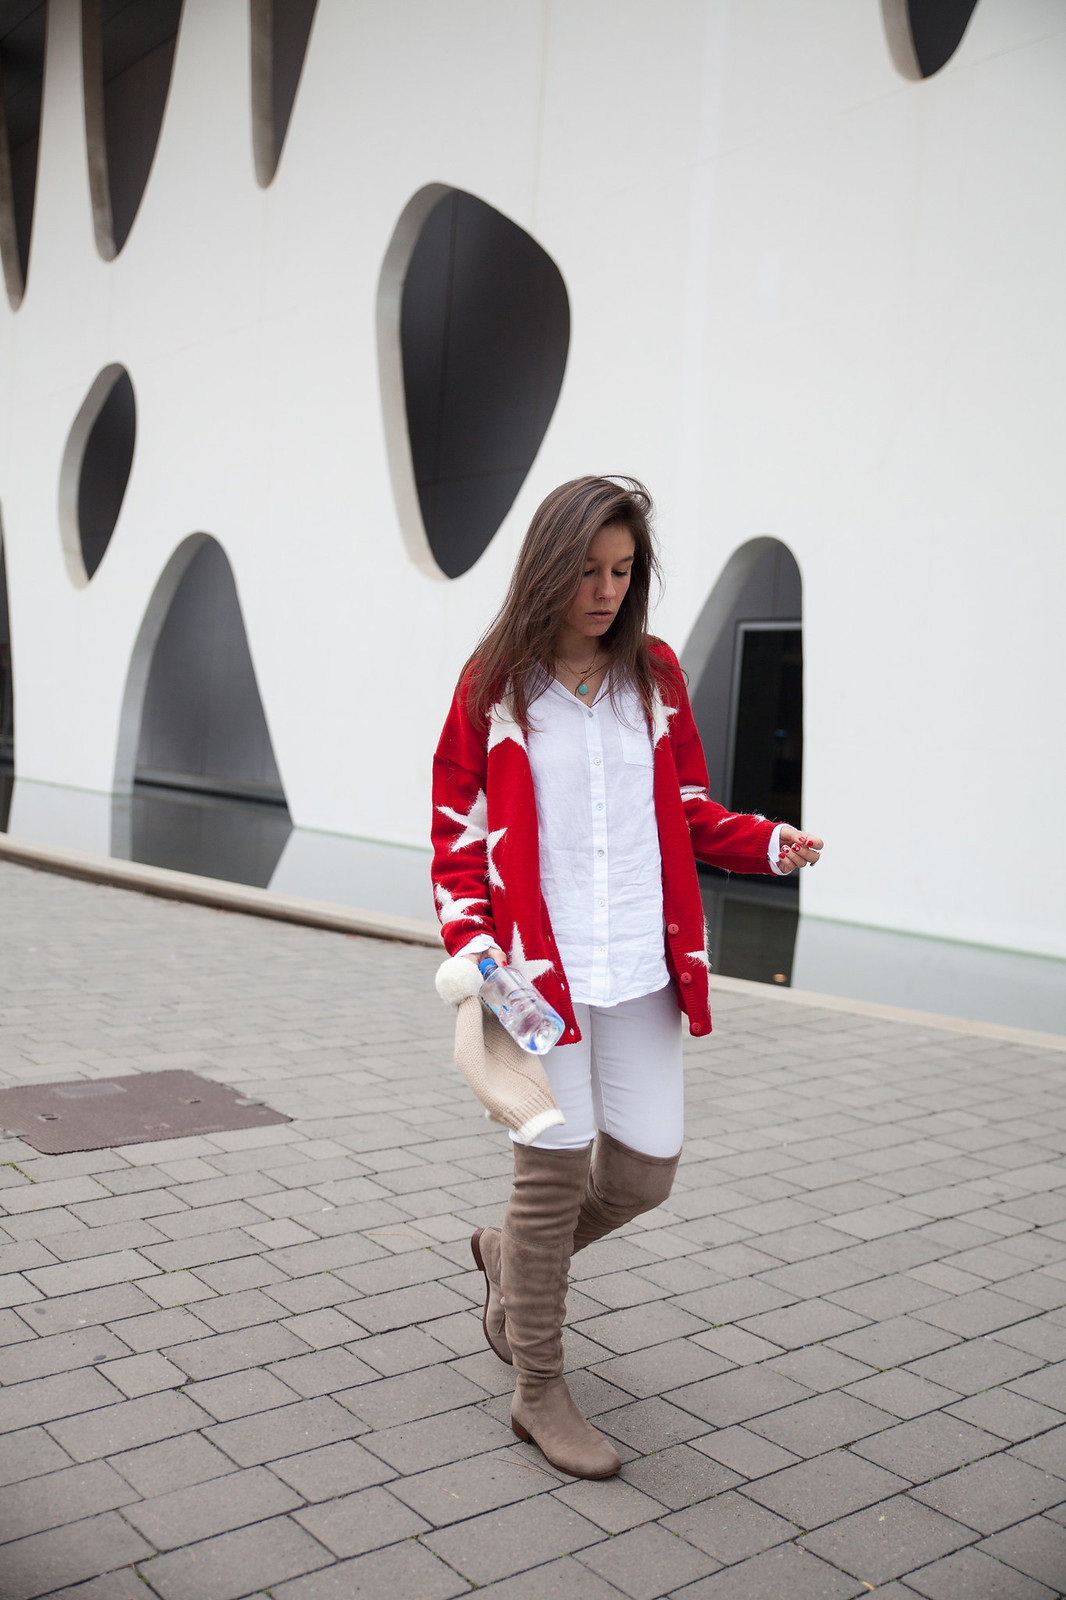 red cardigan supreme nails rüga collection theguestgirl the guest girl stars cardigan style steve madden over the knee shoes fiji water spain barcelona fashion week